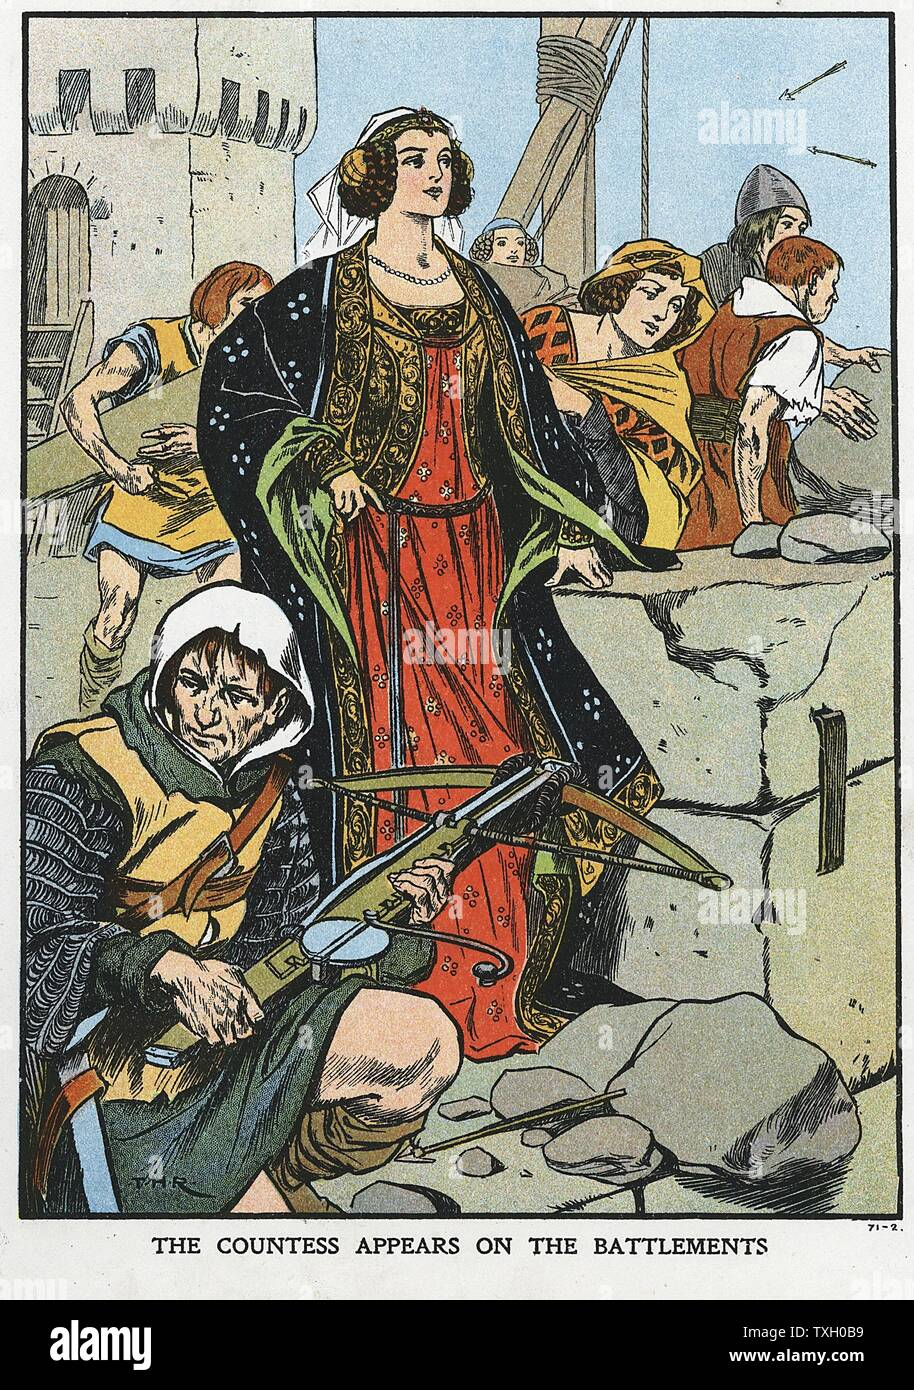 Agnes, Countess of Dunbar (1312?-1369), known as Black Agnes, defending Dunbar Castle in 1338 when her husband rebelled against the English. Early 20th century colour-printed wood engraving Stock Photo